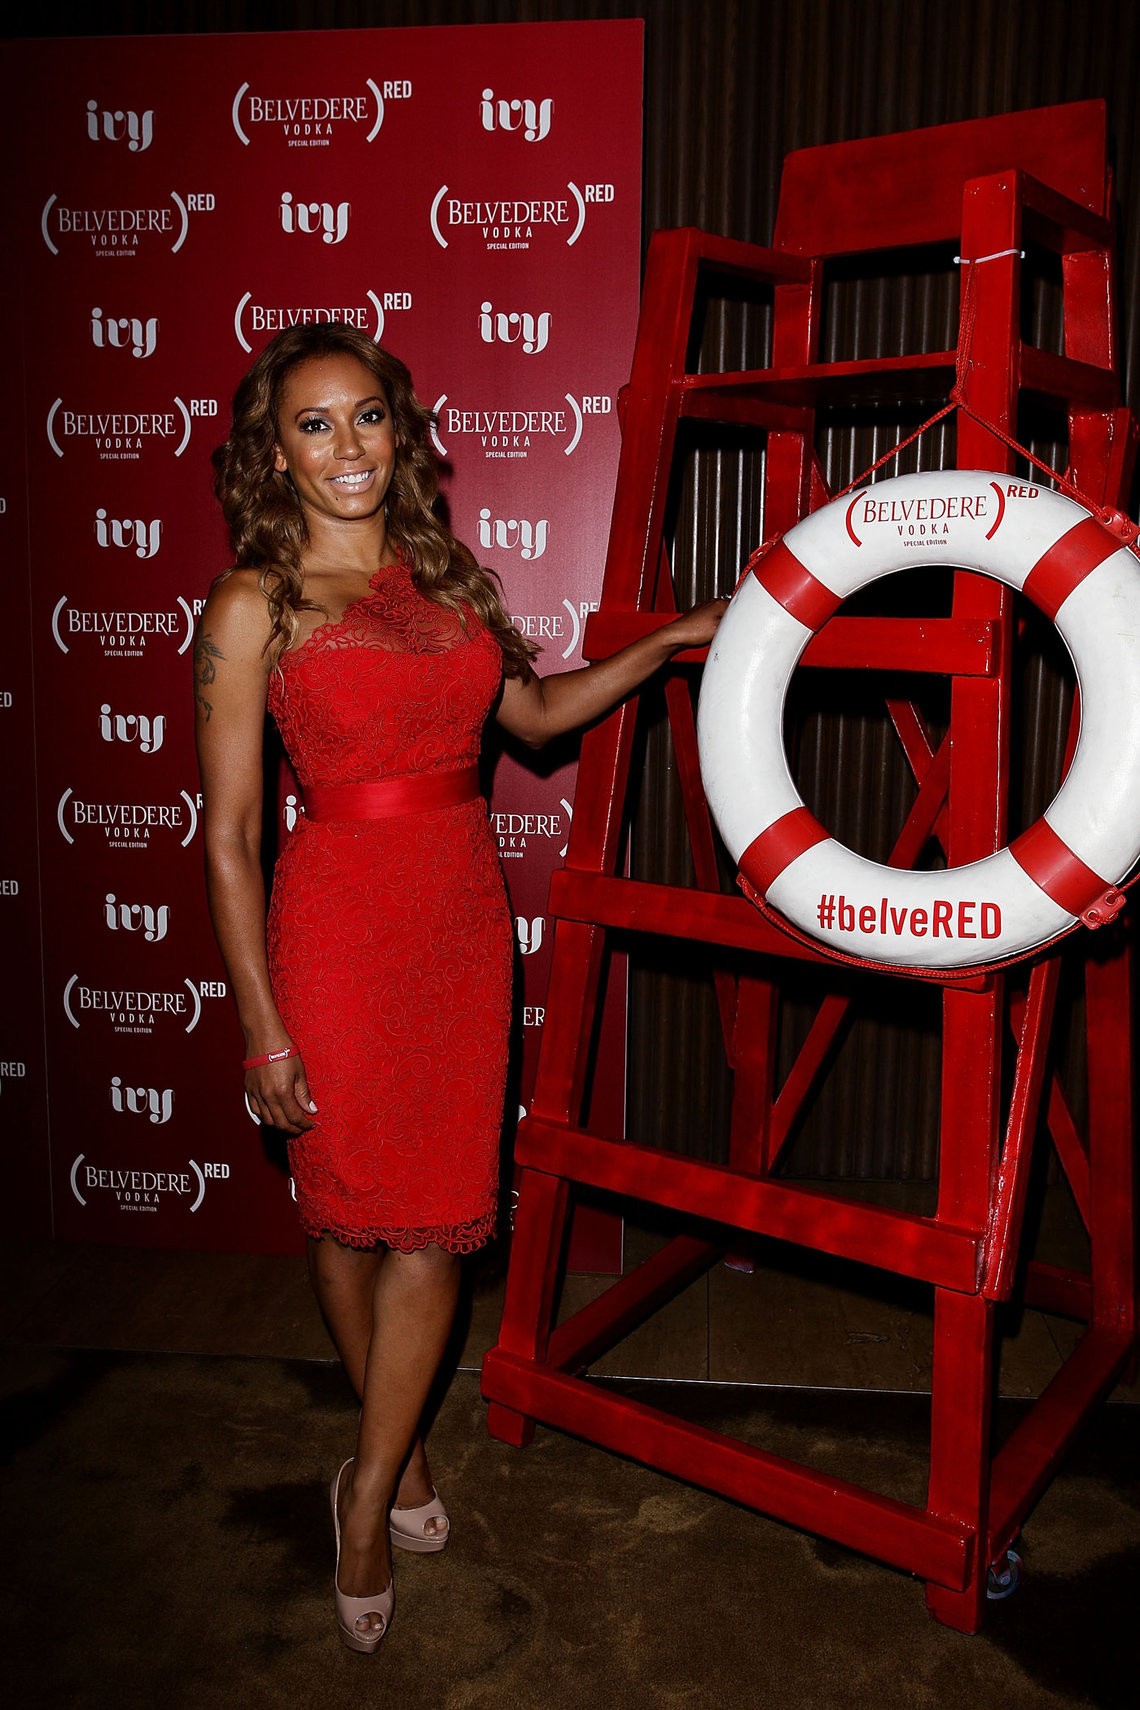 Melanie Brown Belevedere Red Launch At The Ivy Pool In Sidney 011212 85210-8592